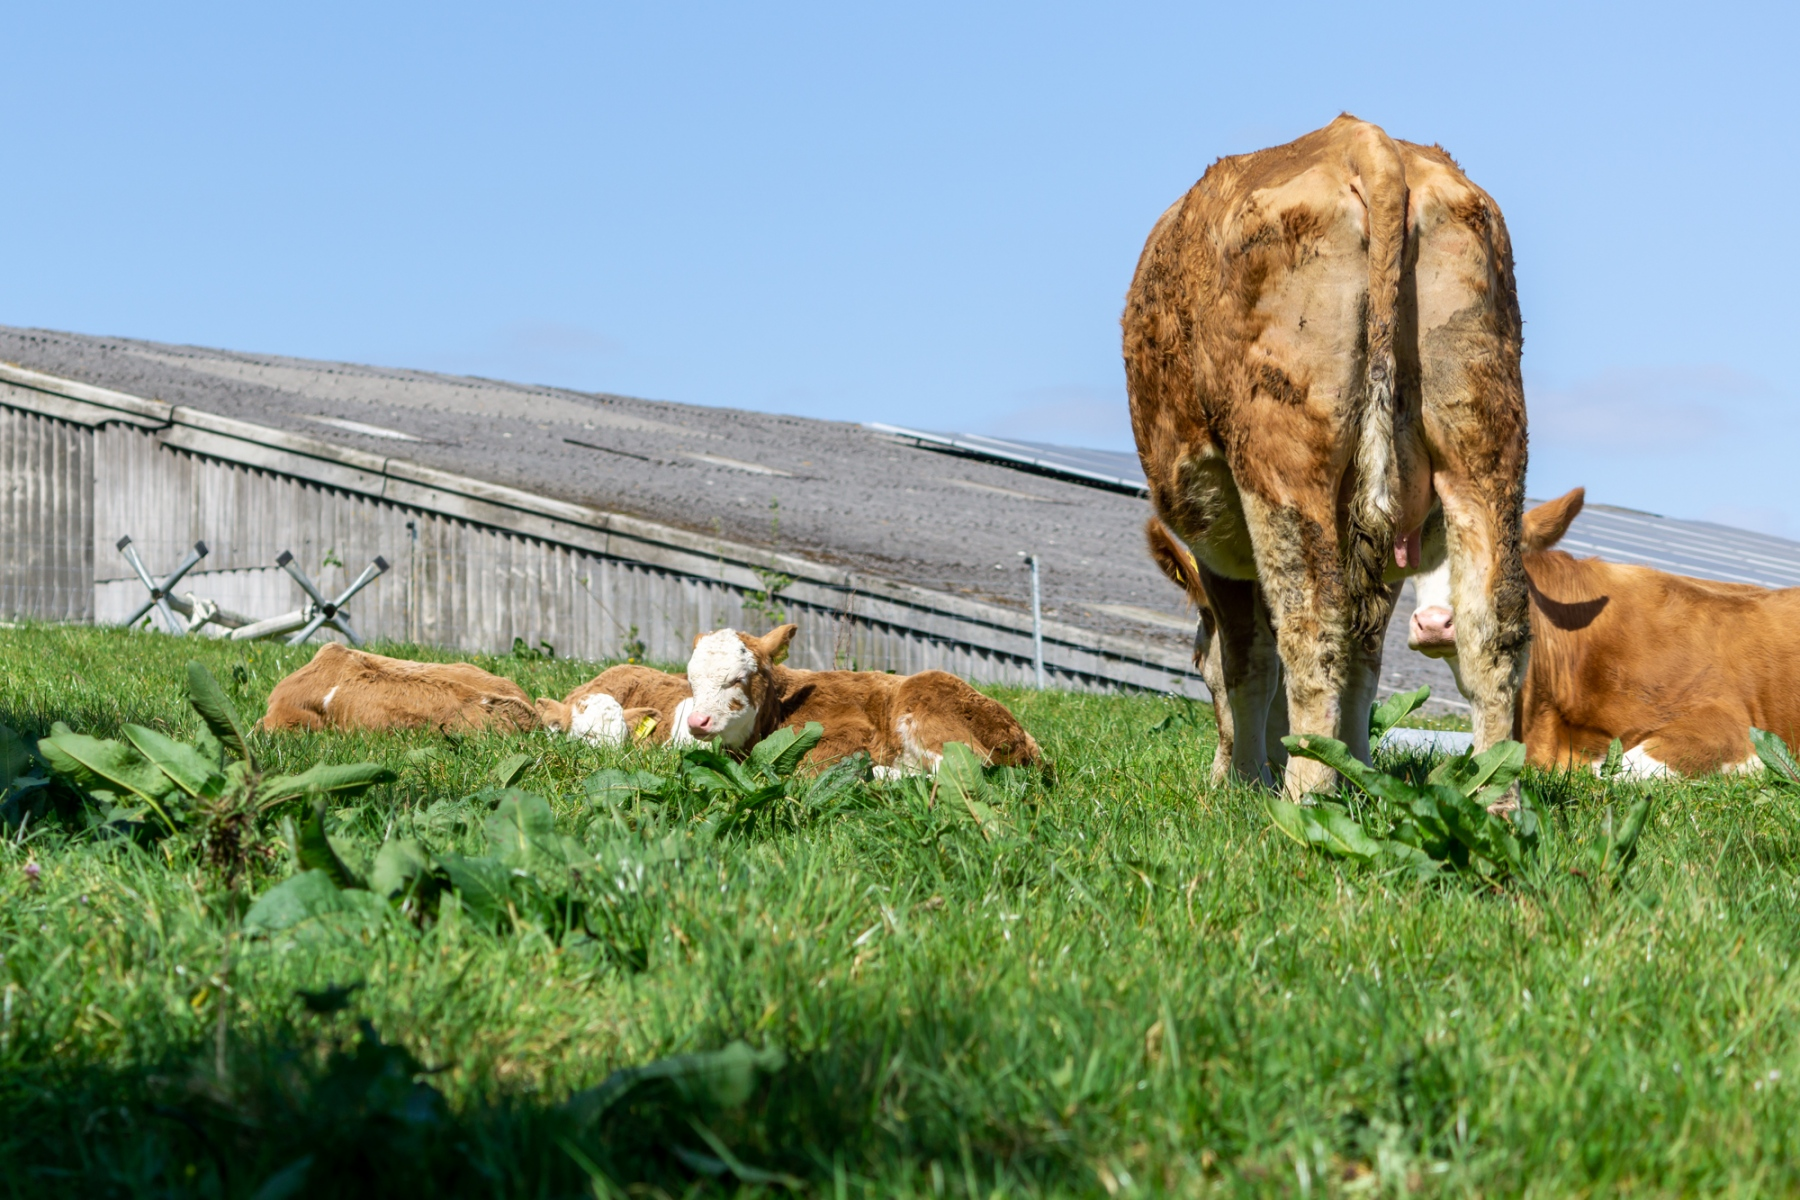 Several brown and white calfs lay on green grass. Two adult cows stand nearby. A farm building can be seen behind.